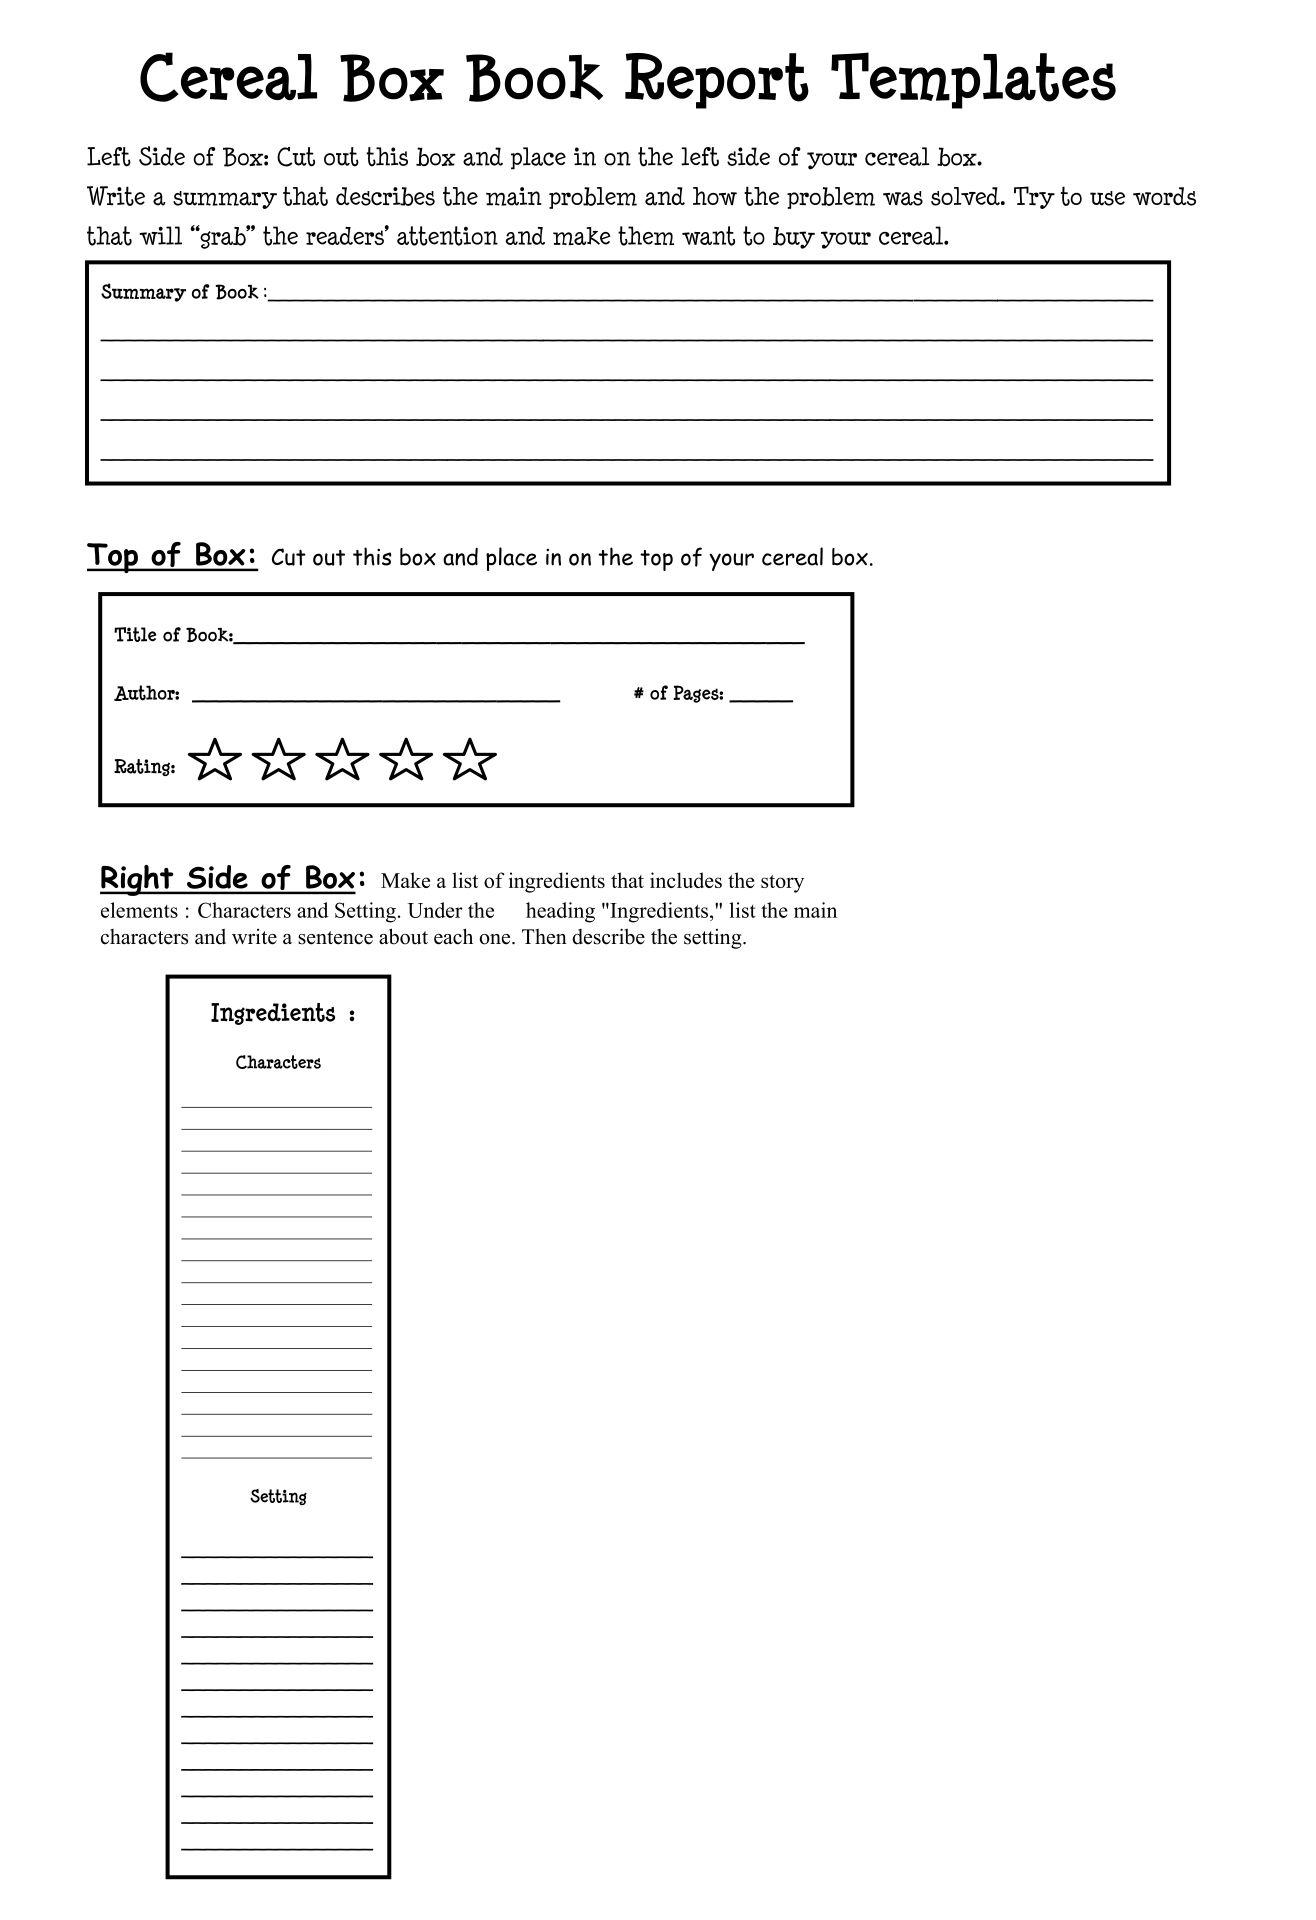 Cereal Box Template Printable